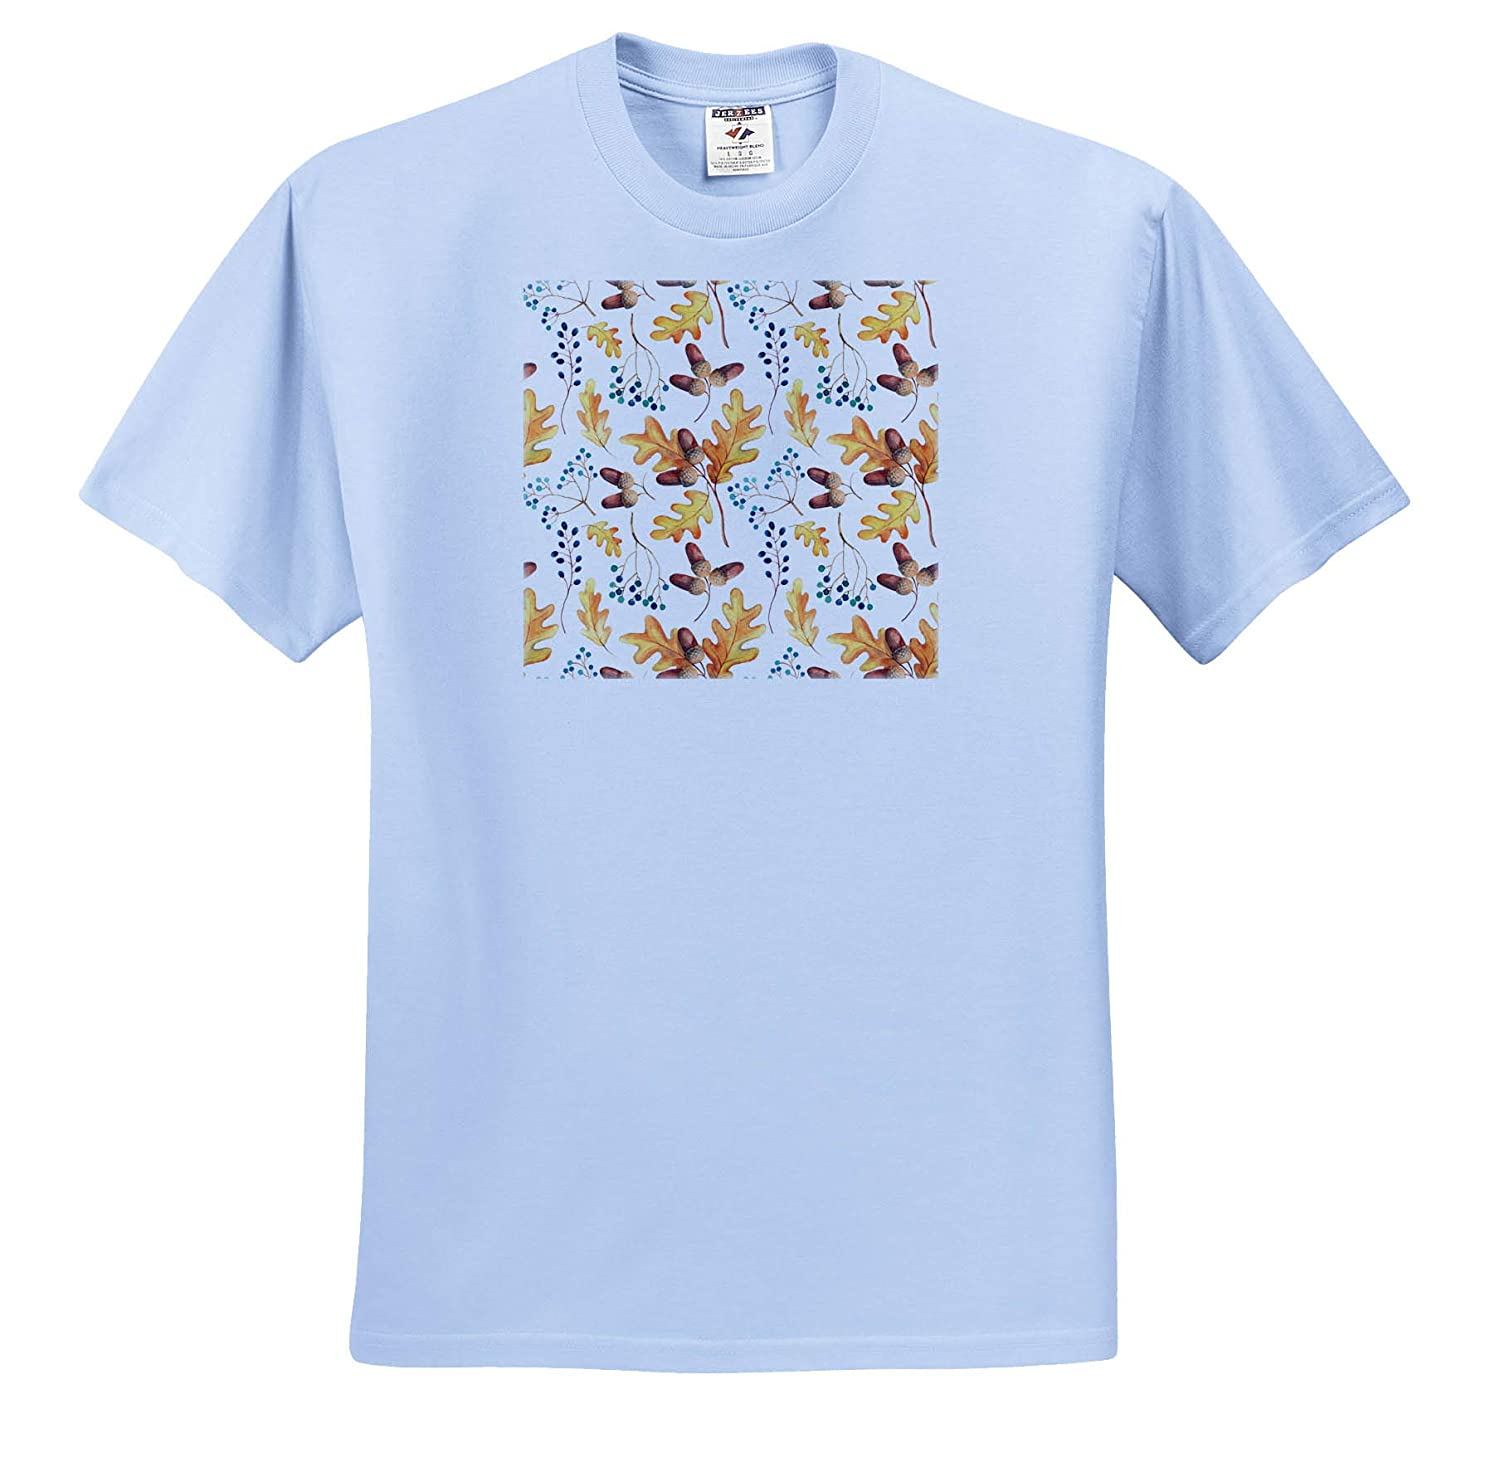 Autumnal Pattern of Oak Leaves T-Shirts Acorns Blue Berries on White 3dRose Alexis Design Pattern Autumn